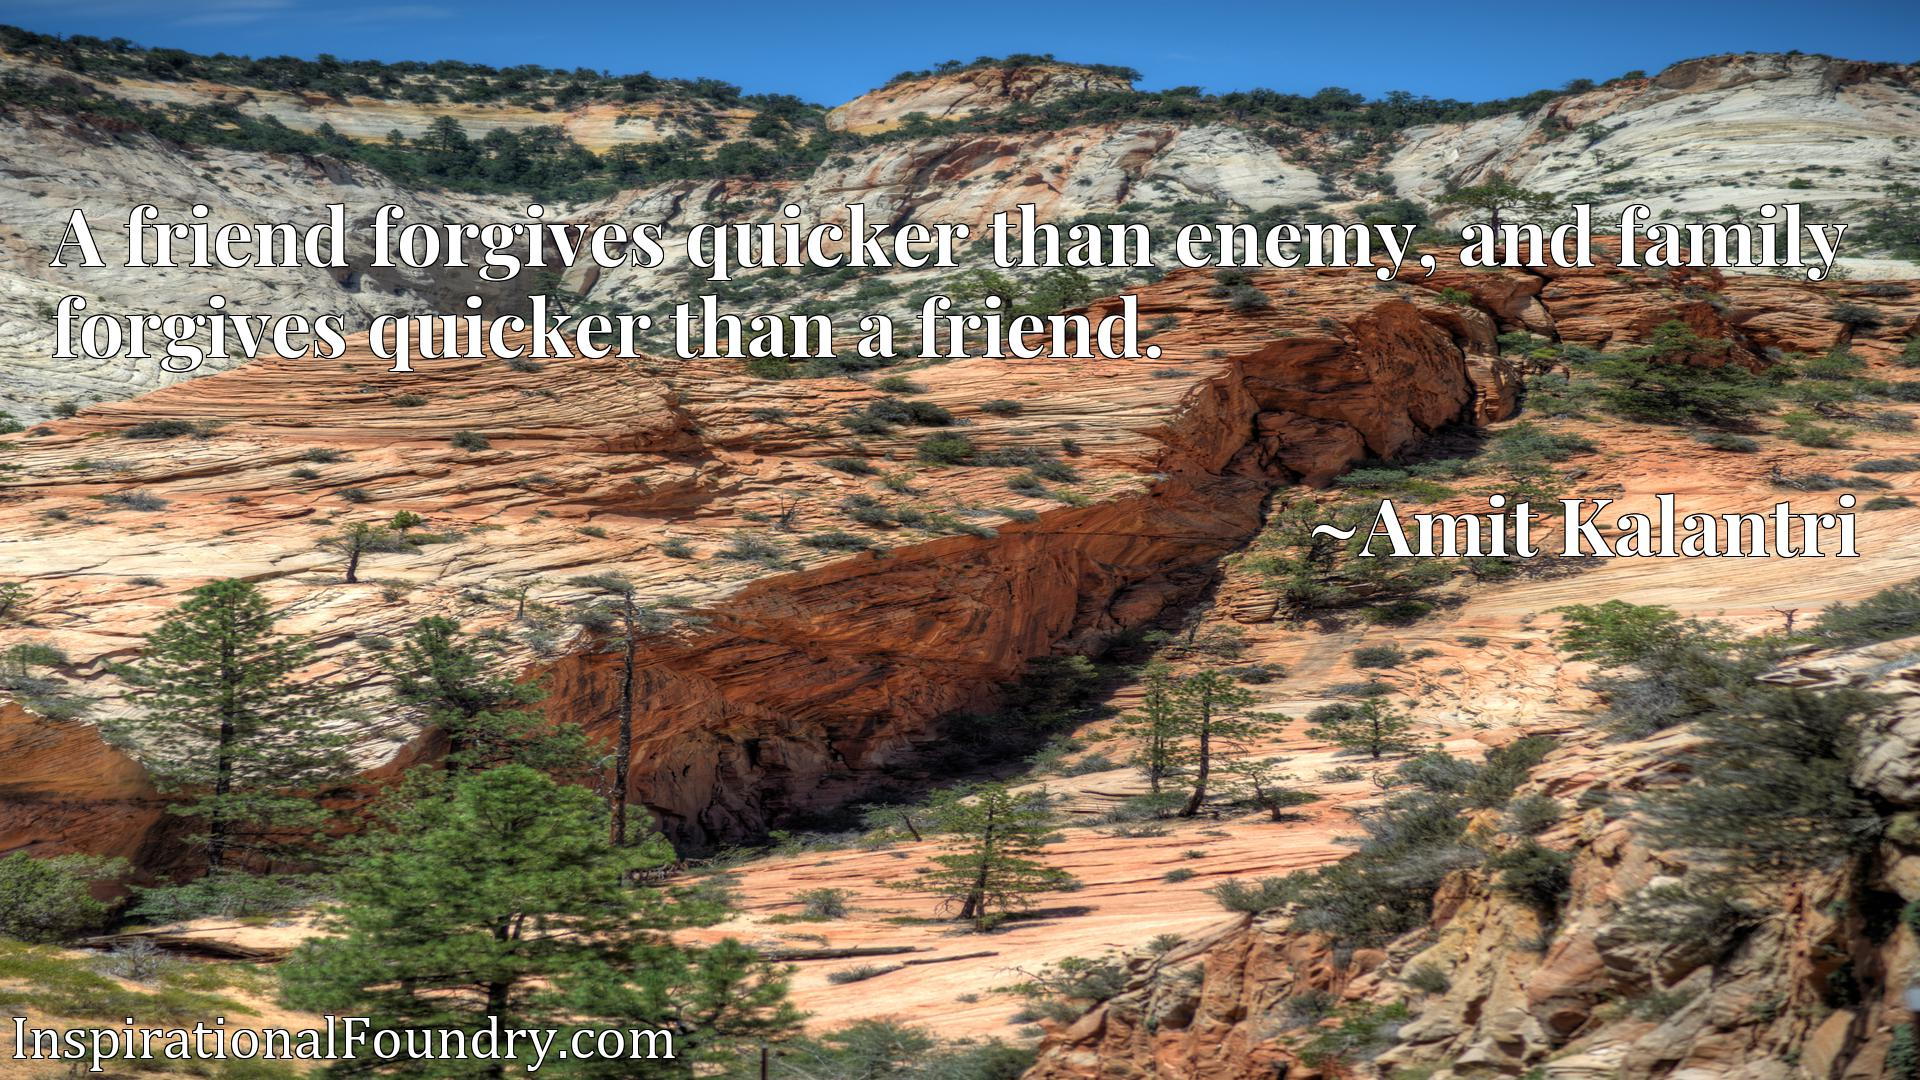 A friend forgives quicker than enemy, and family forgives quicker than a friend.